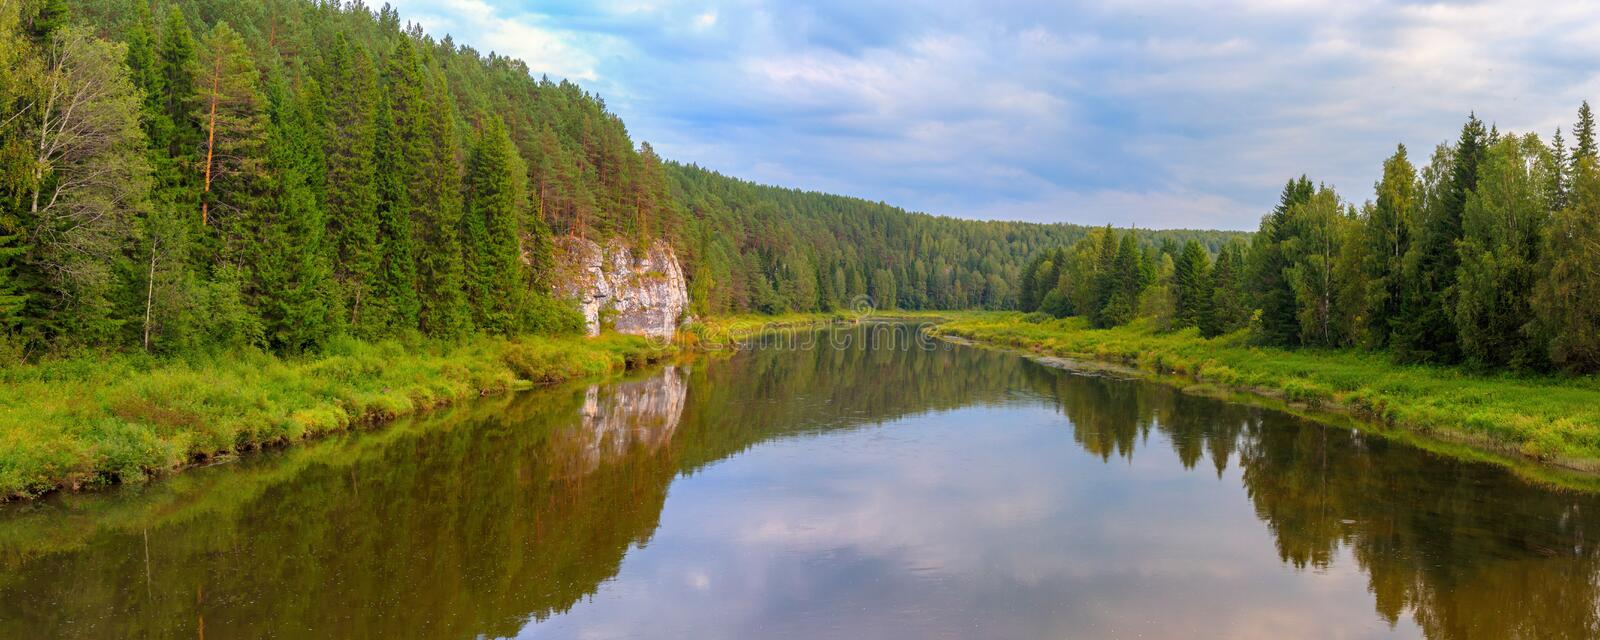 Chusovaya river picturesque landscape, Ural, Russia royalty free stock photography